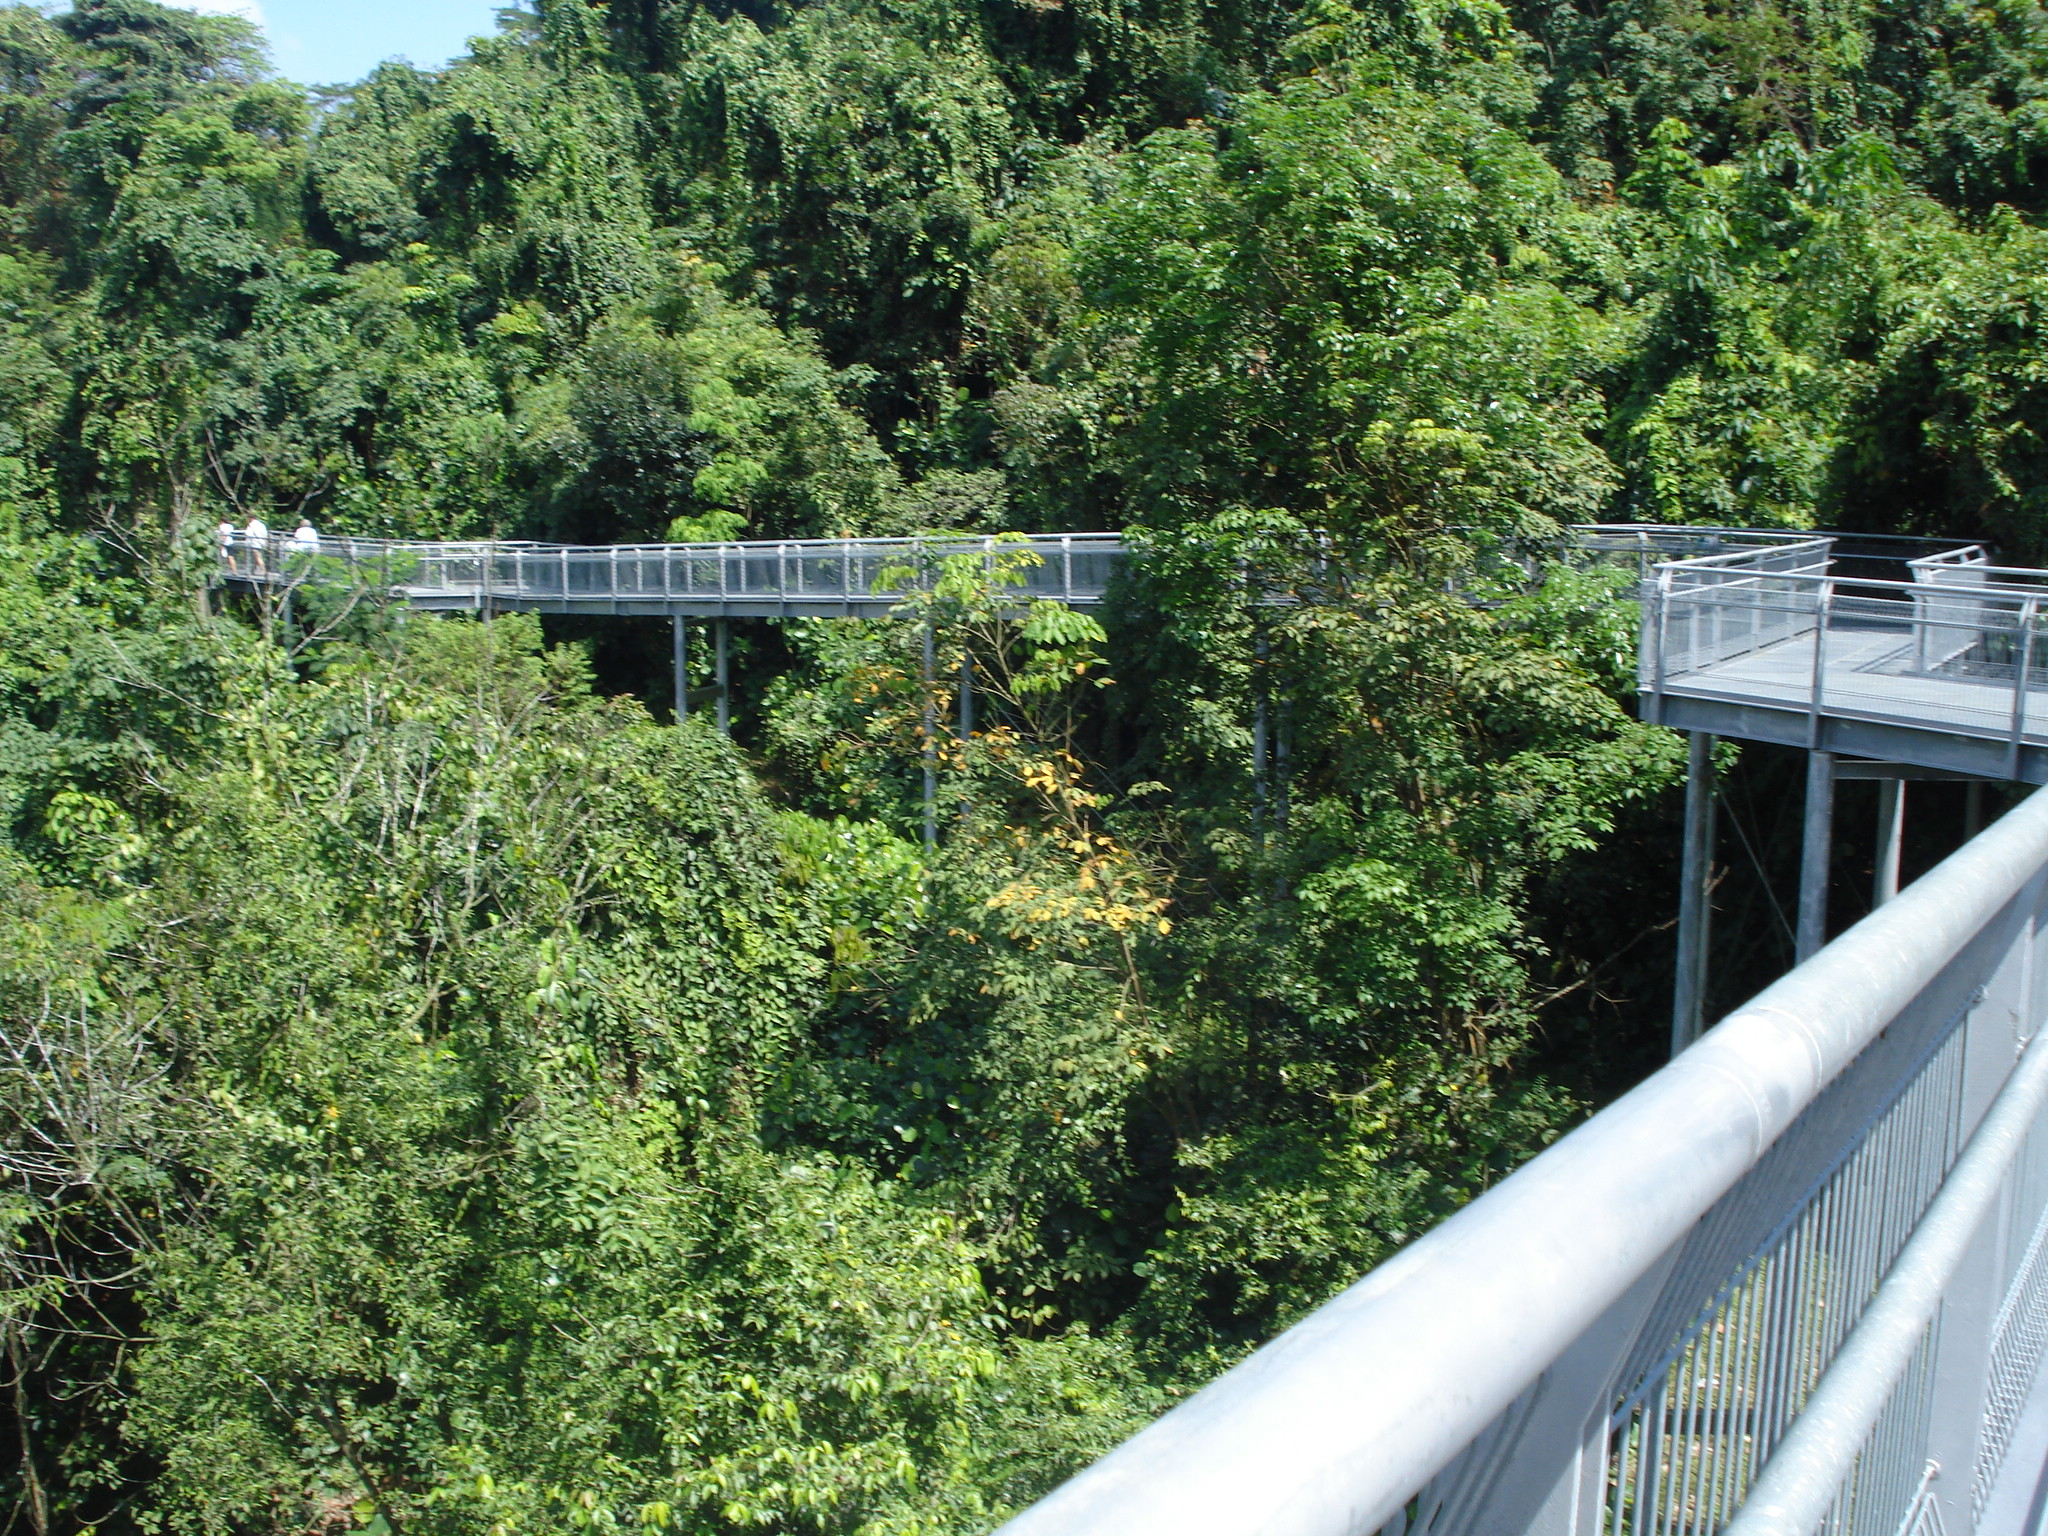 elevated walkway for the forest walk in Southern Ridges